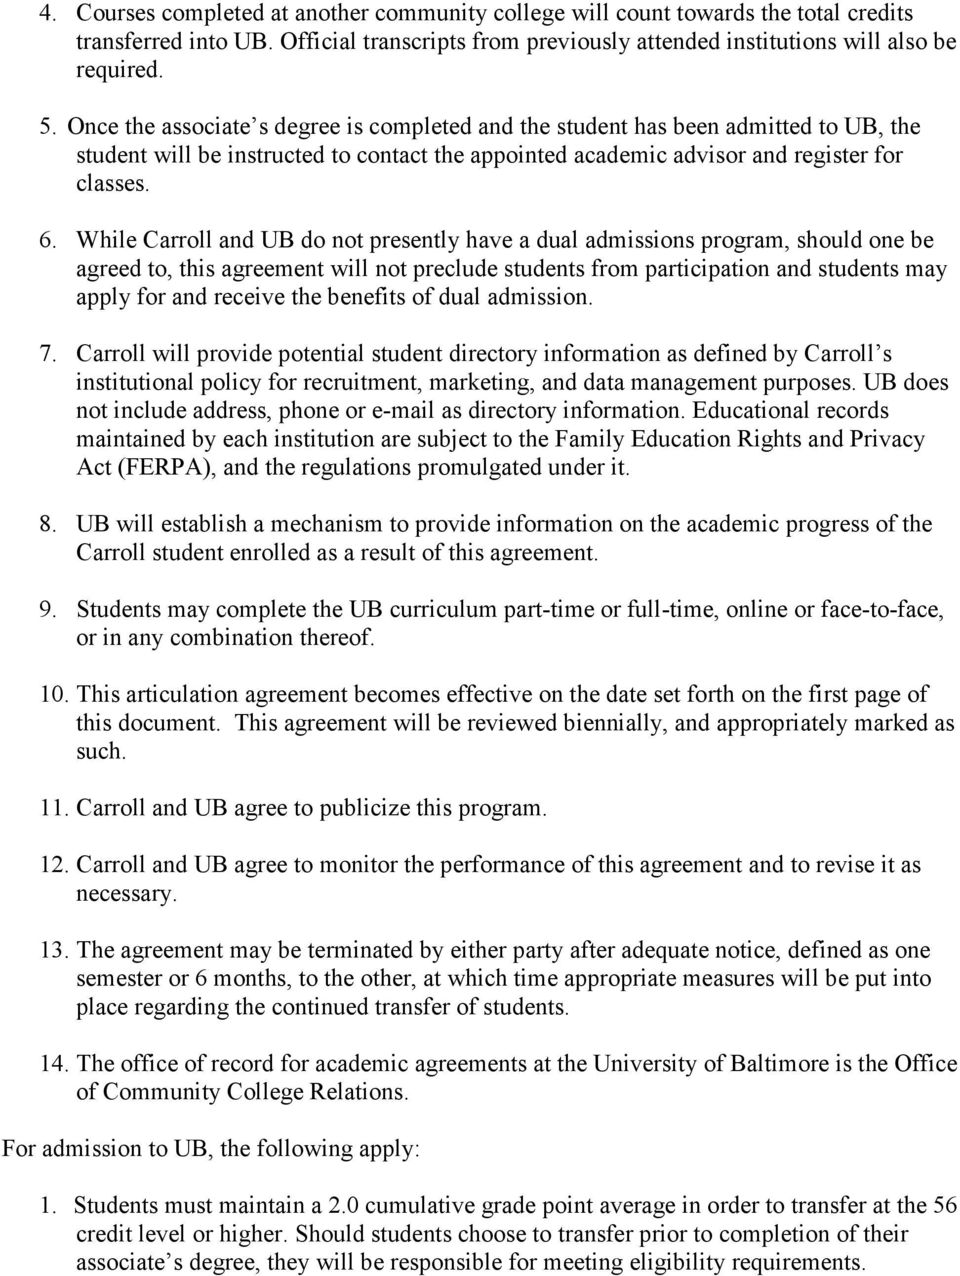 While Carroll and UB do not presently have a dual admissions program, should one be agreed to, this agreement will not preclude students from participation and students may apply for and receive the